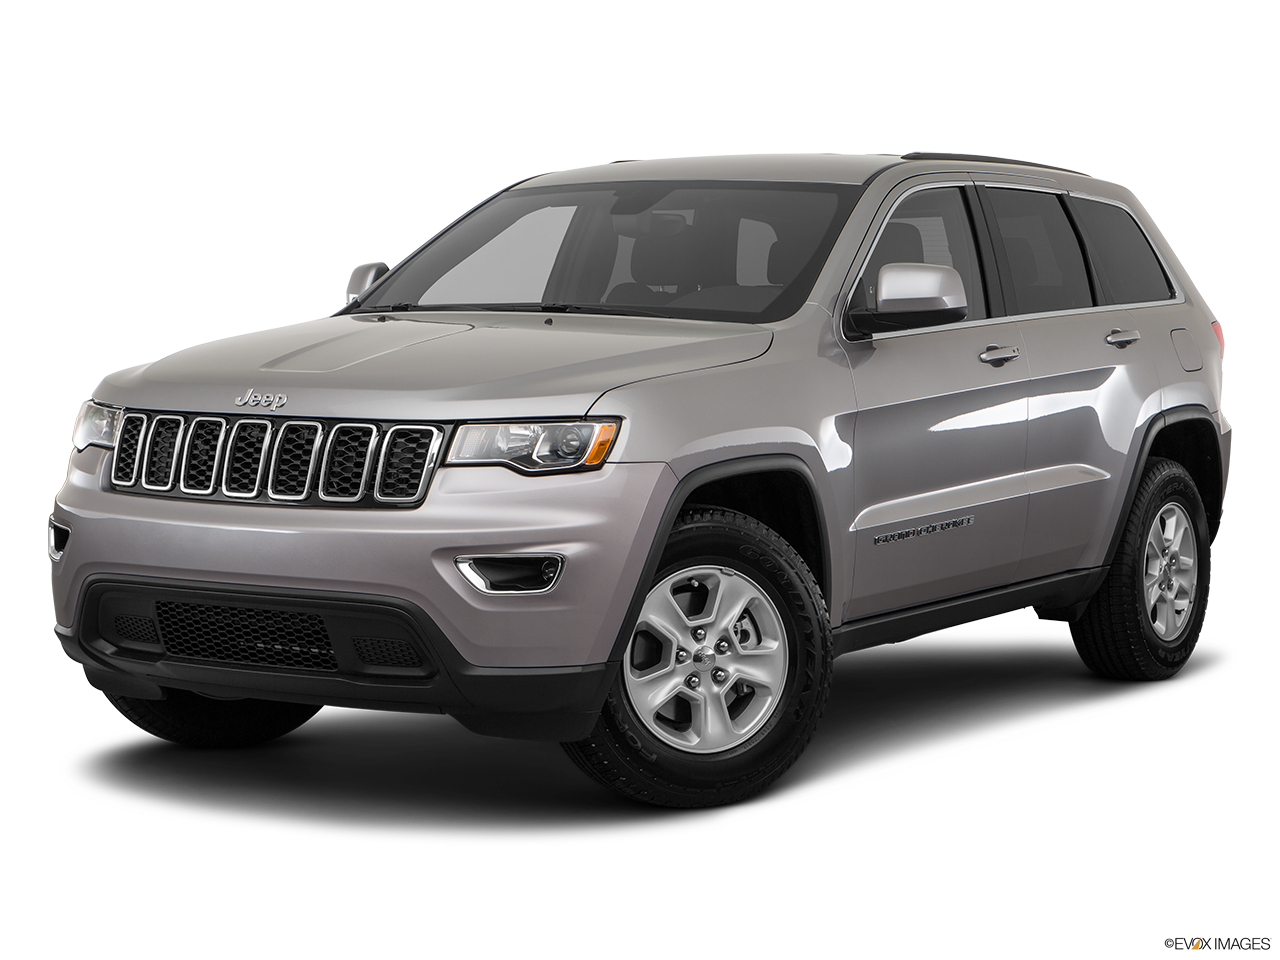 Test Drive A 2017 Jeep Grand Cherokee at Moss Bros Chrysler Dodge Jeep Ram Moreno Valley in Moreno Valley